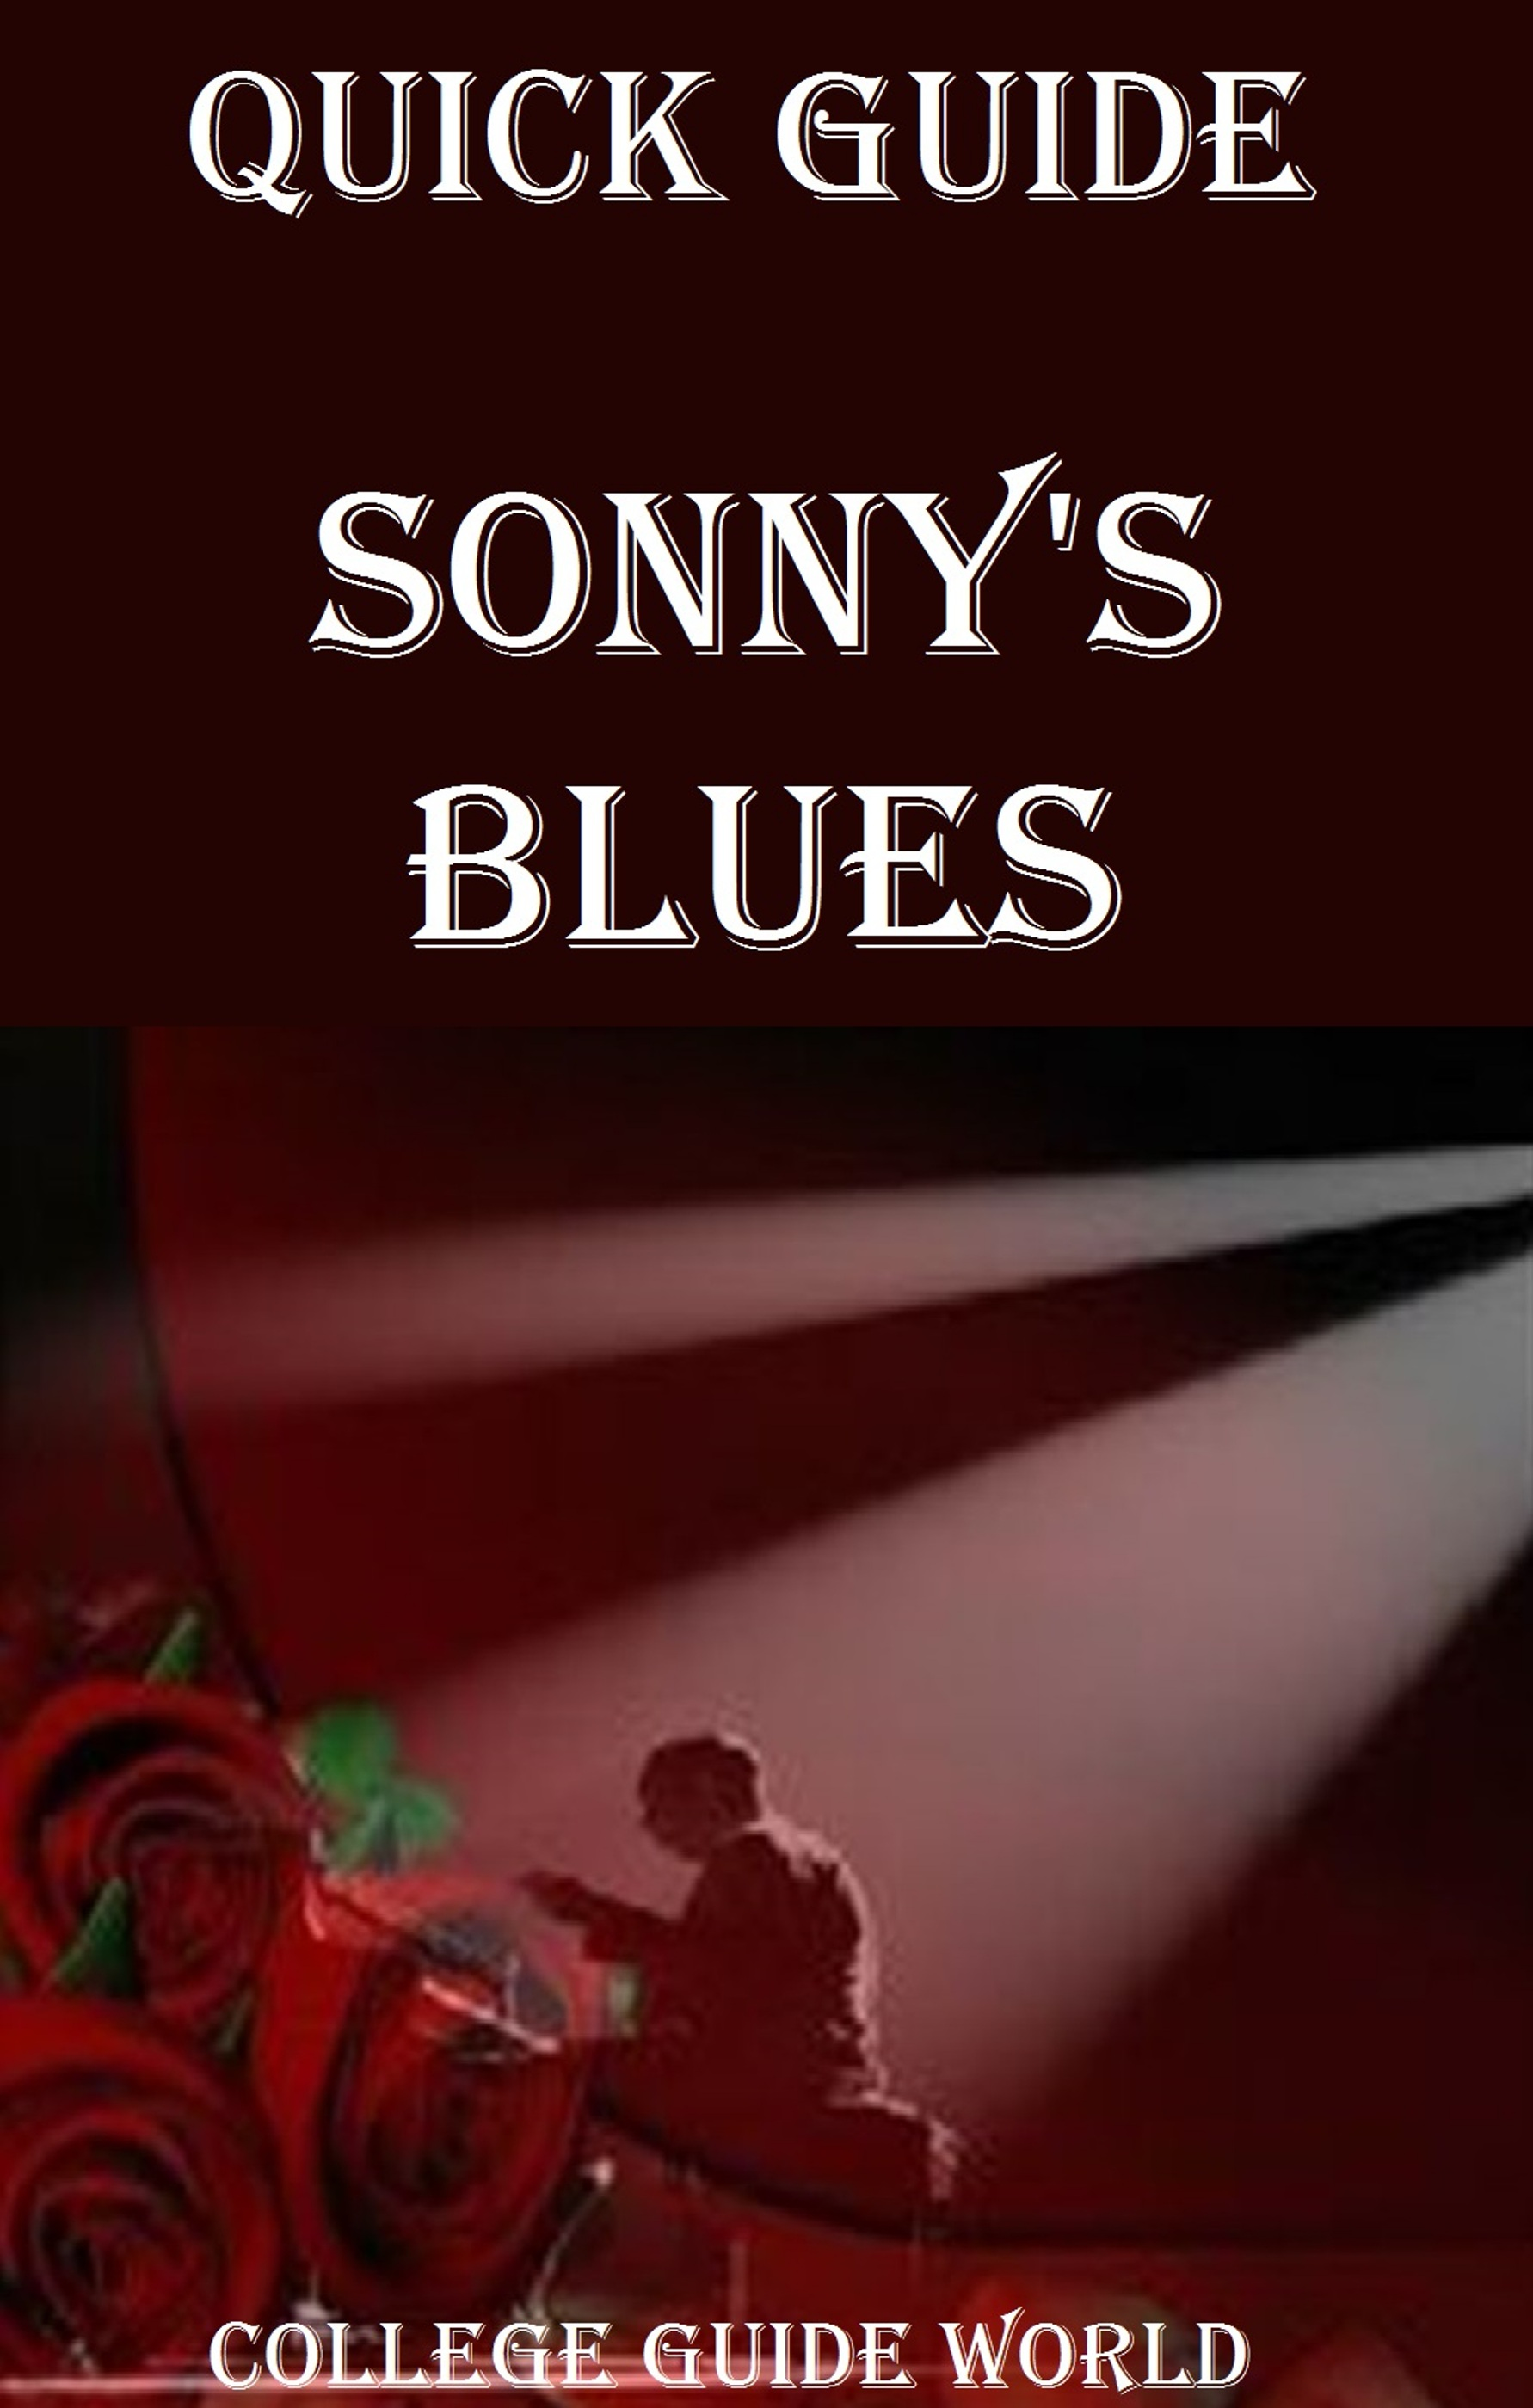 a review of james baldwins story sonnys blues Sonny's blues summary & study guide includes detailed  james baldwin describes the hopeless  and she decided they should keep the story secret from.